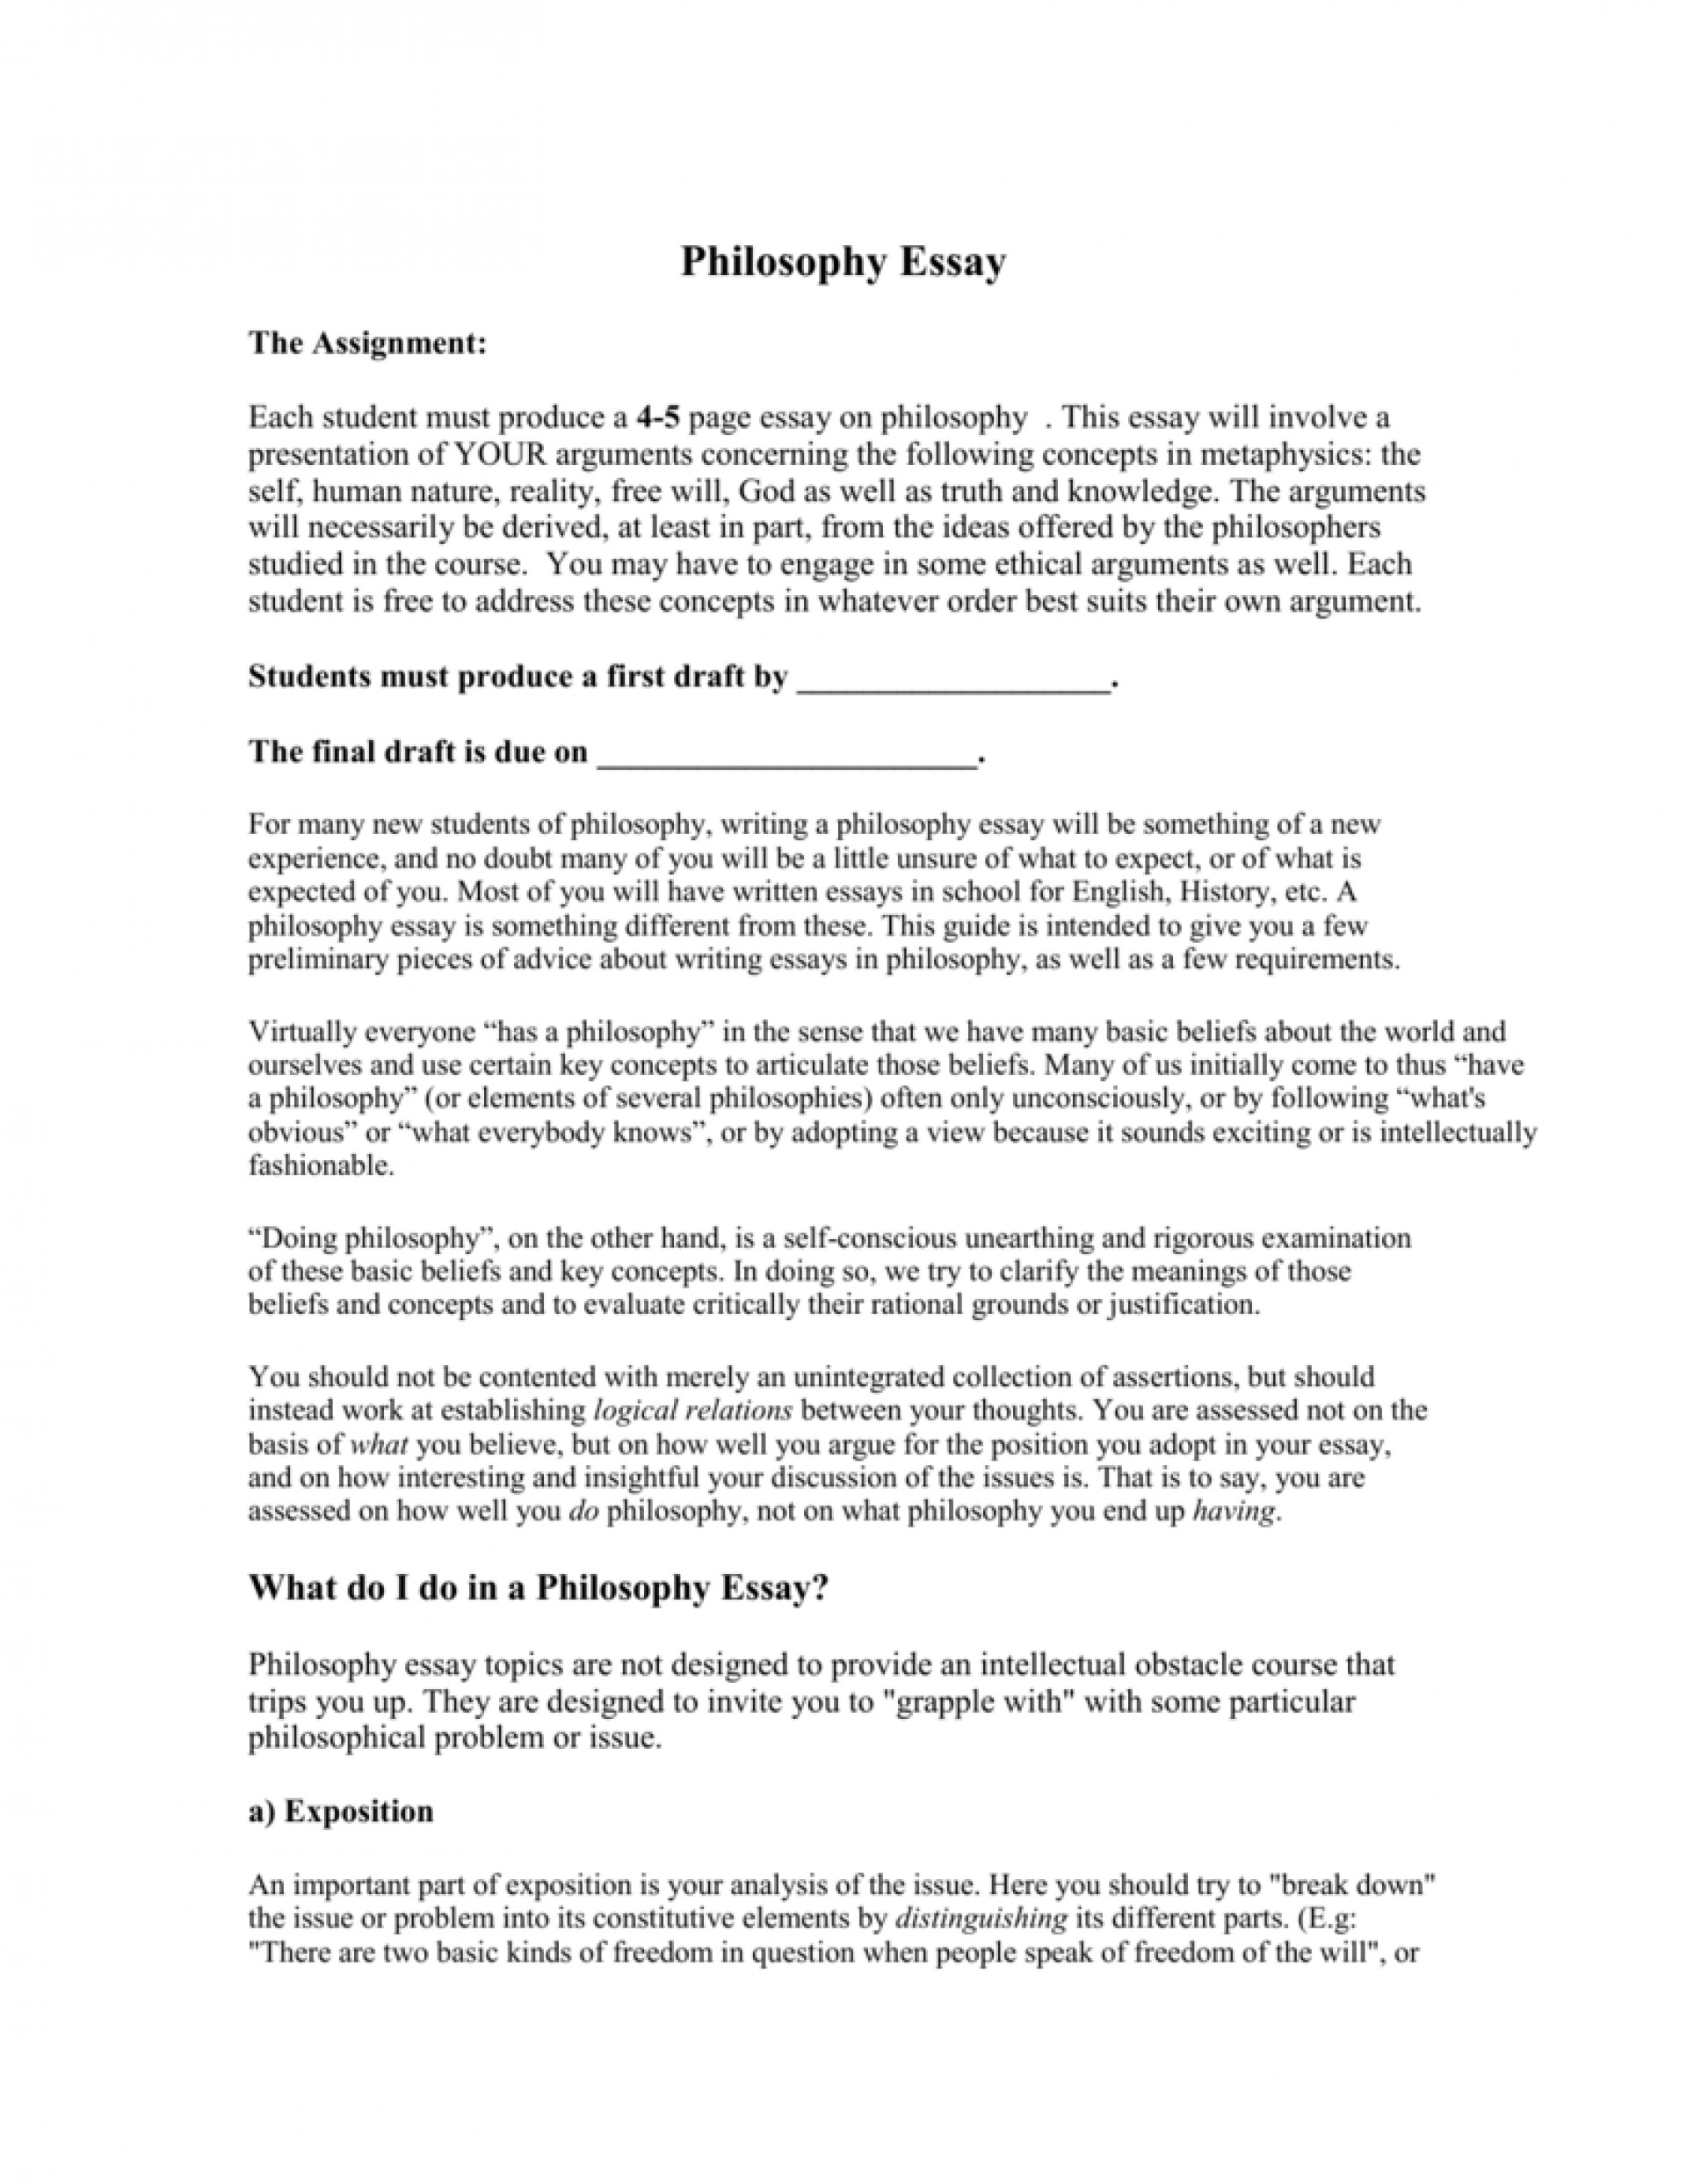 013 Essay Example 007511318 1 Philosophy Frightening Topics Ideas Of Life 101 Questions 1920